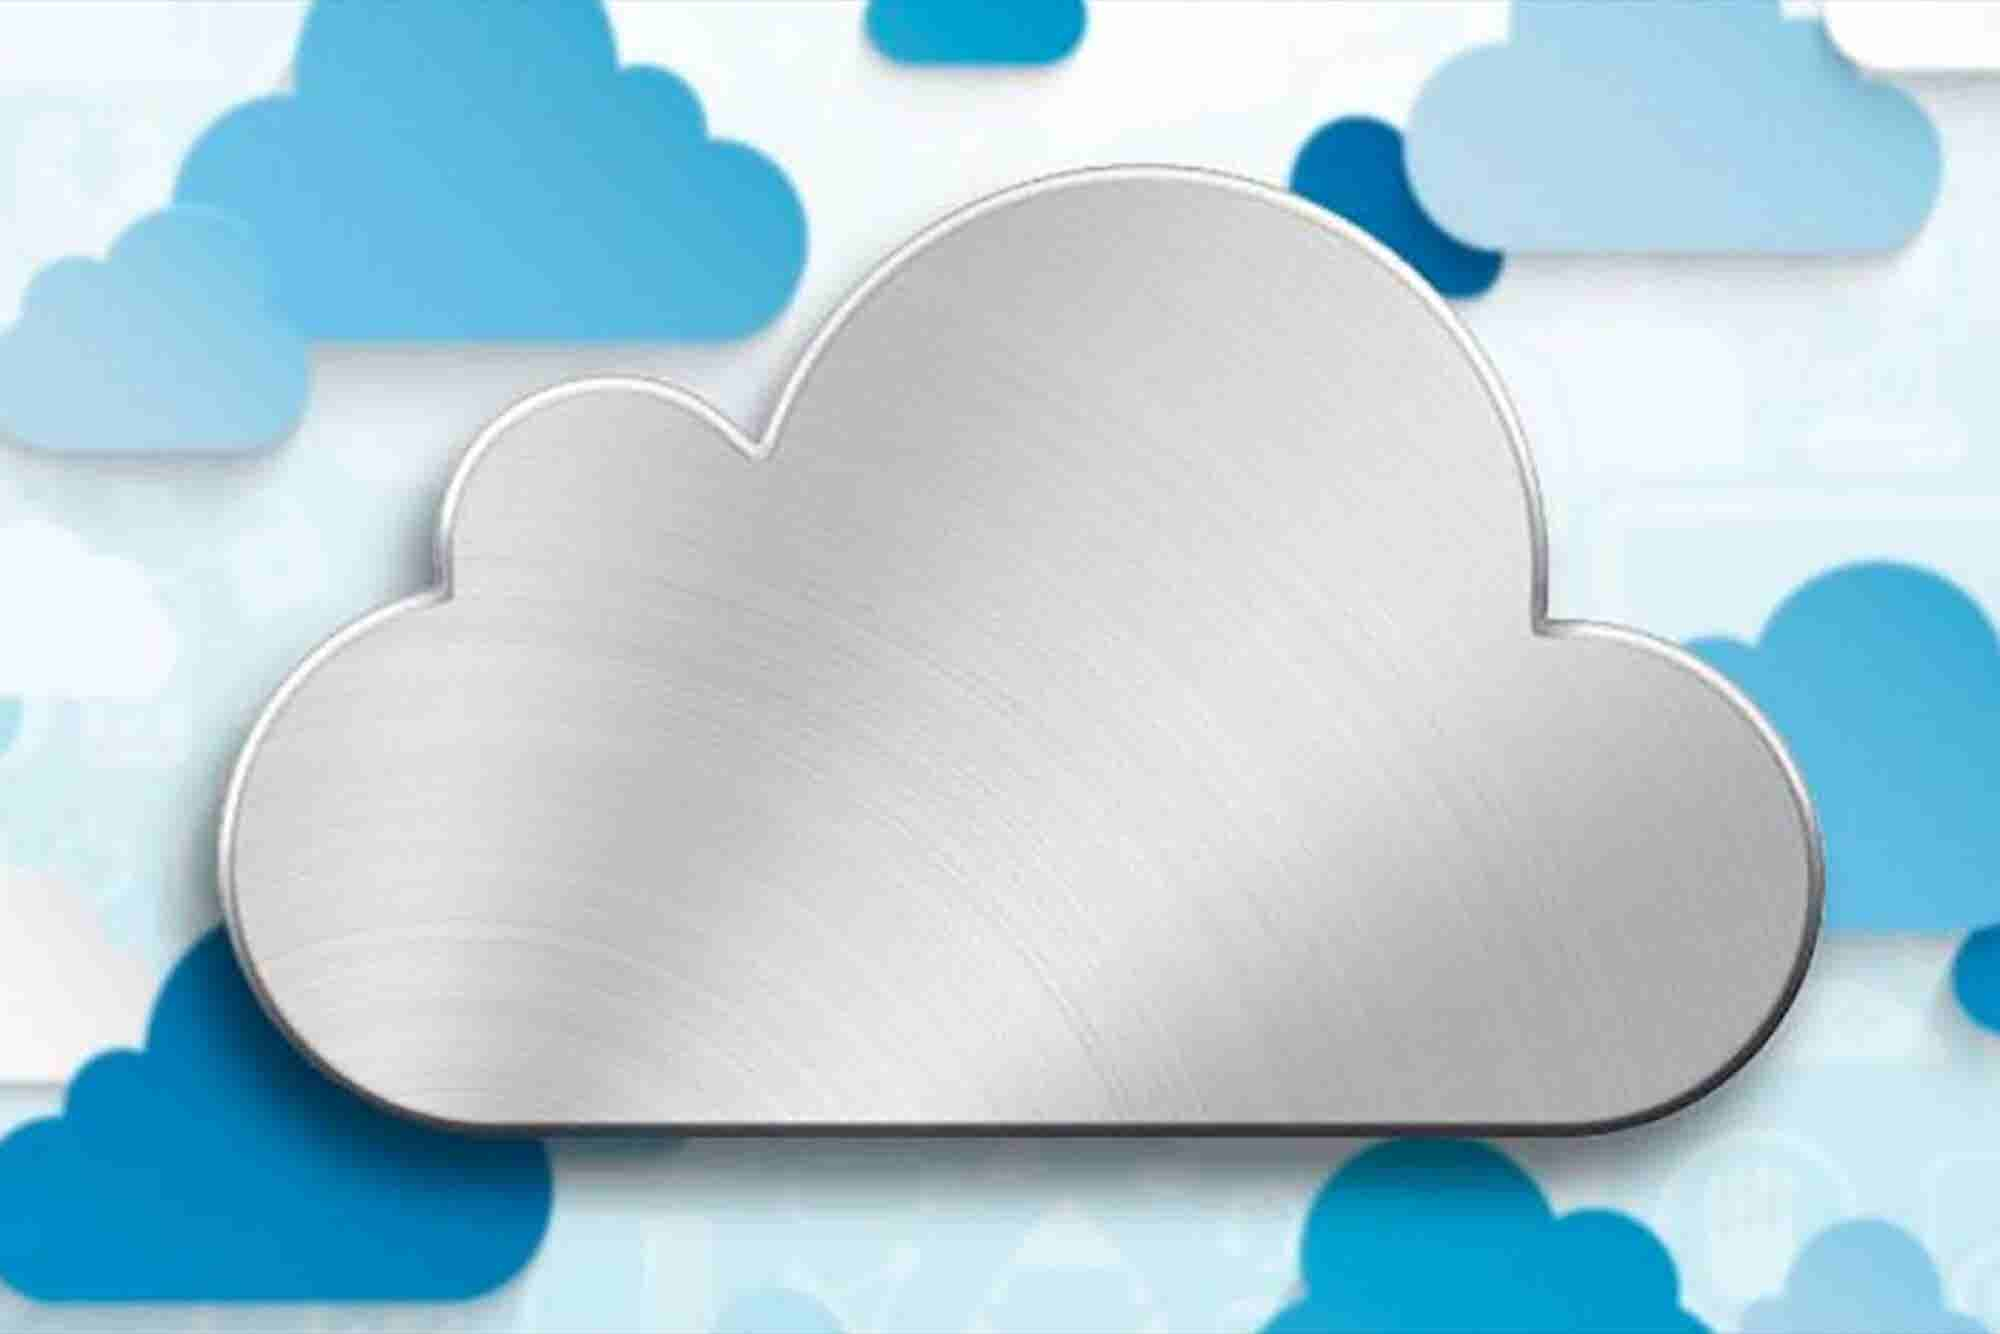 Apple Confirms it Uses Google Cloud for iCloud